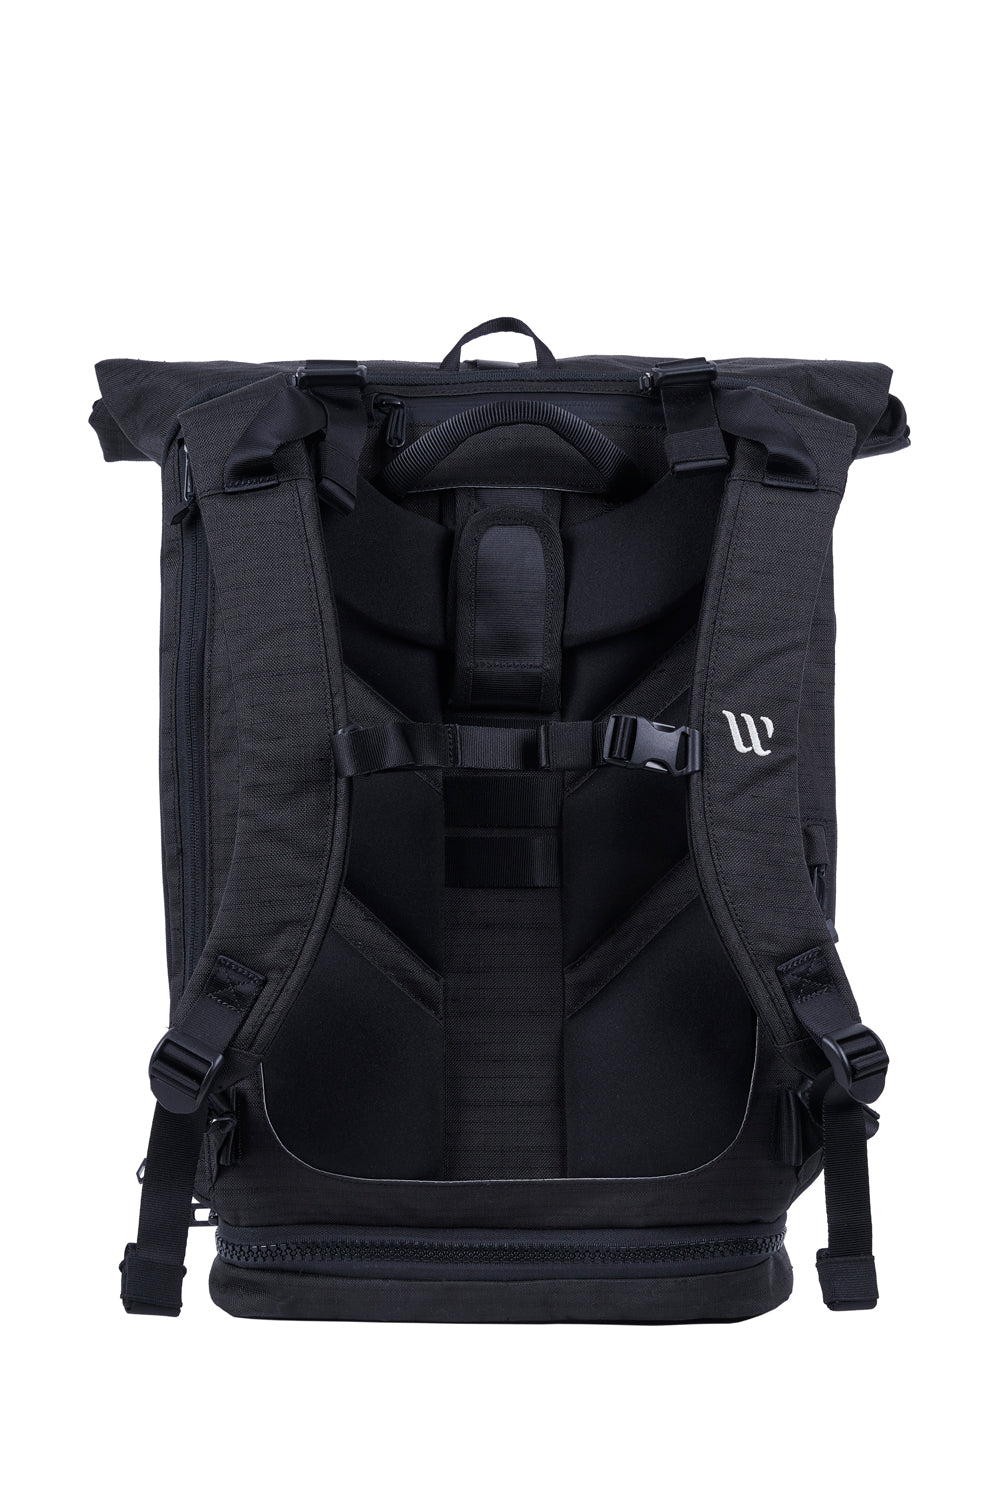 WAYKS Day Pack Black Back